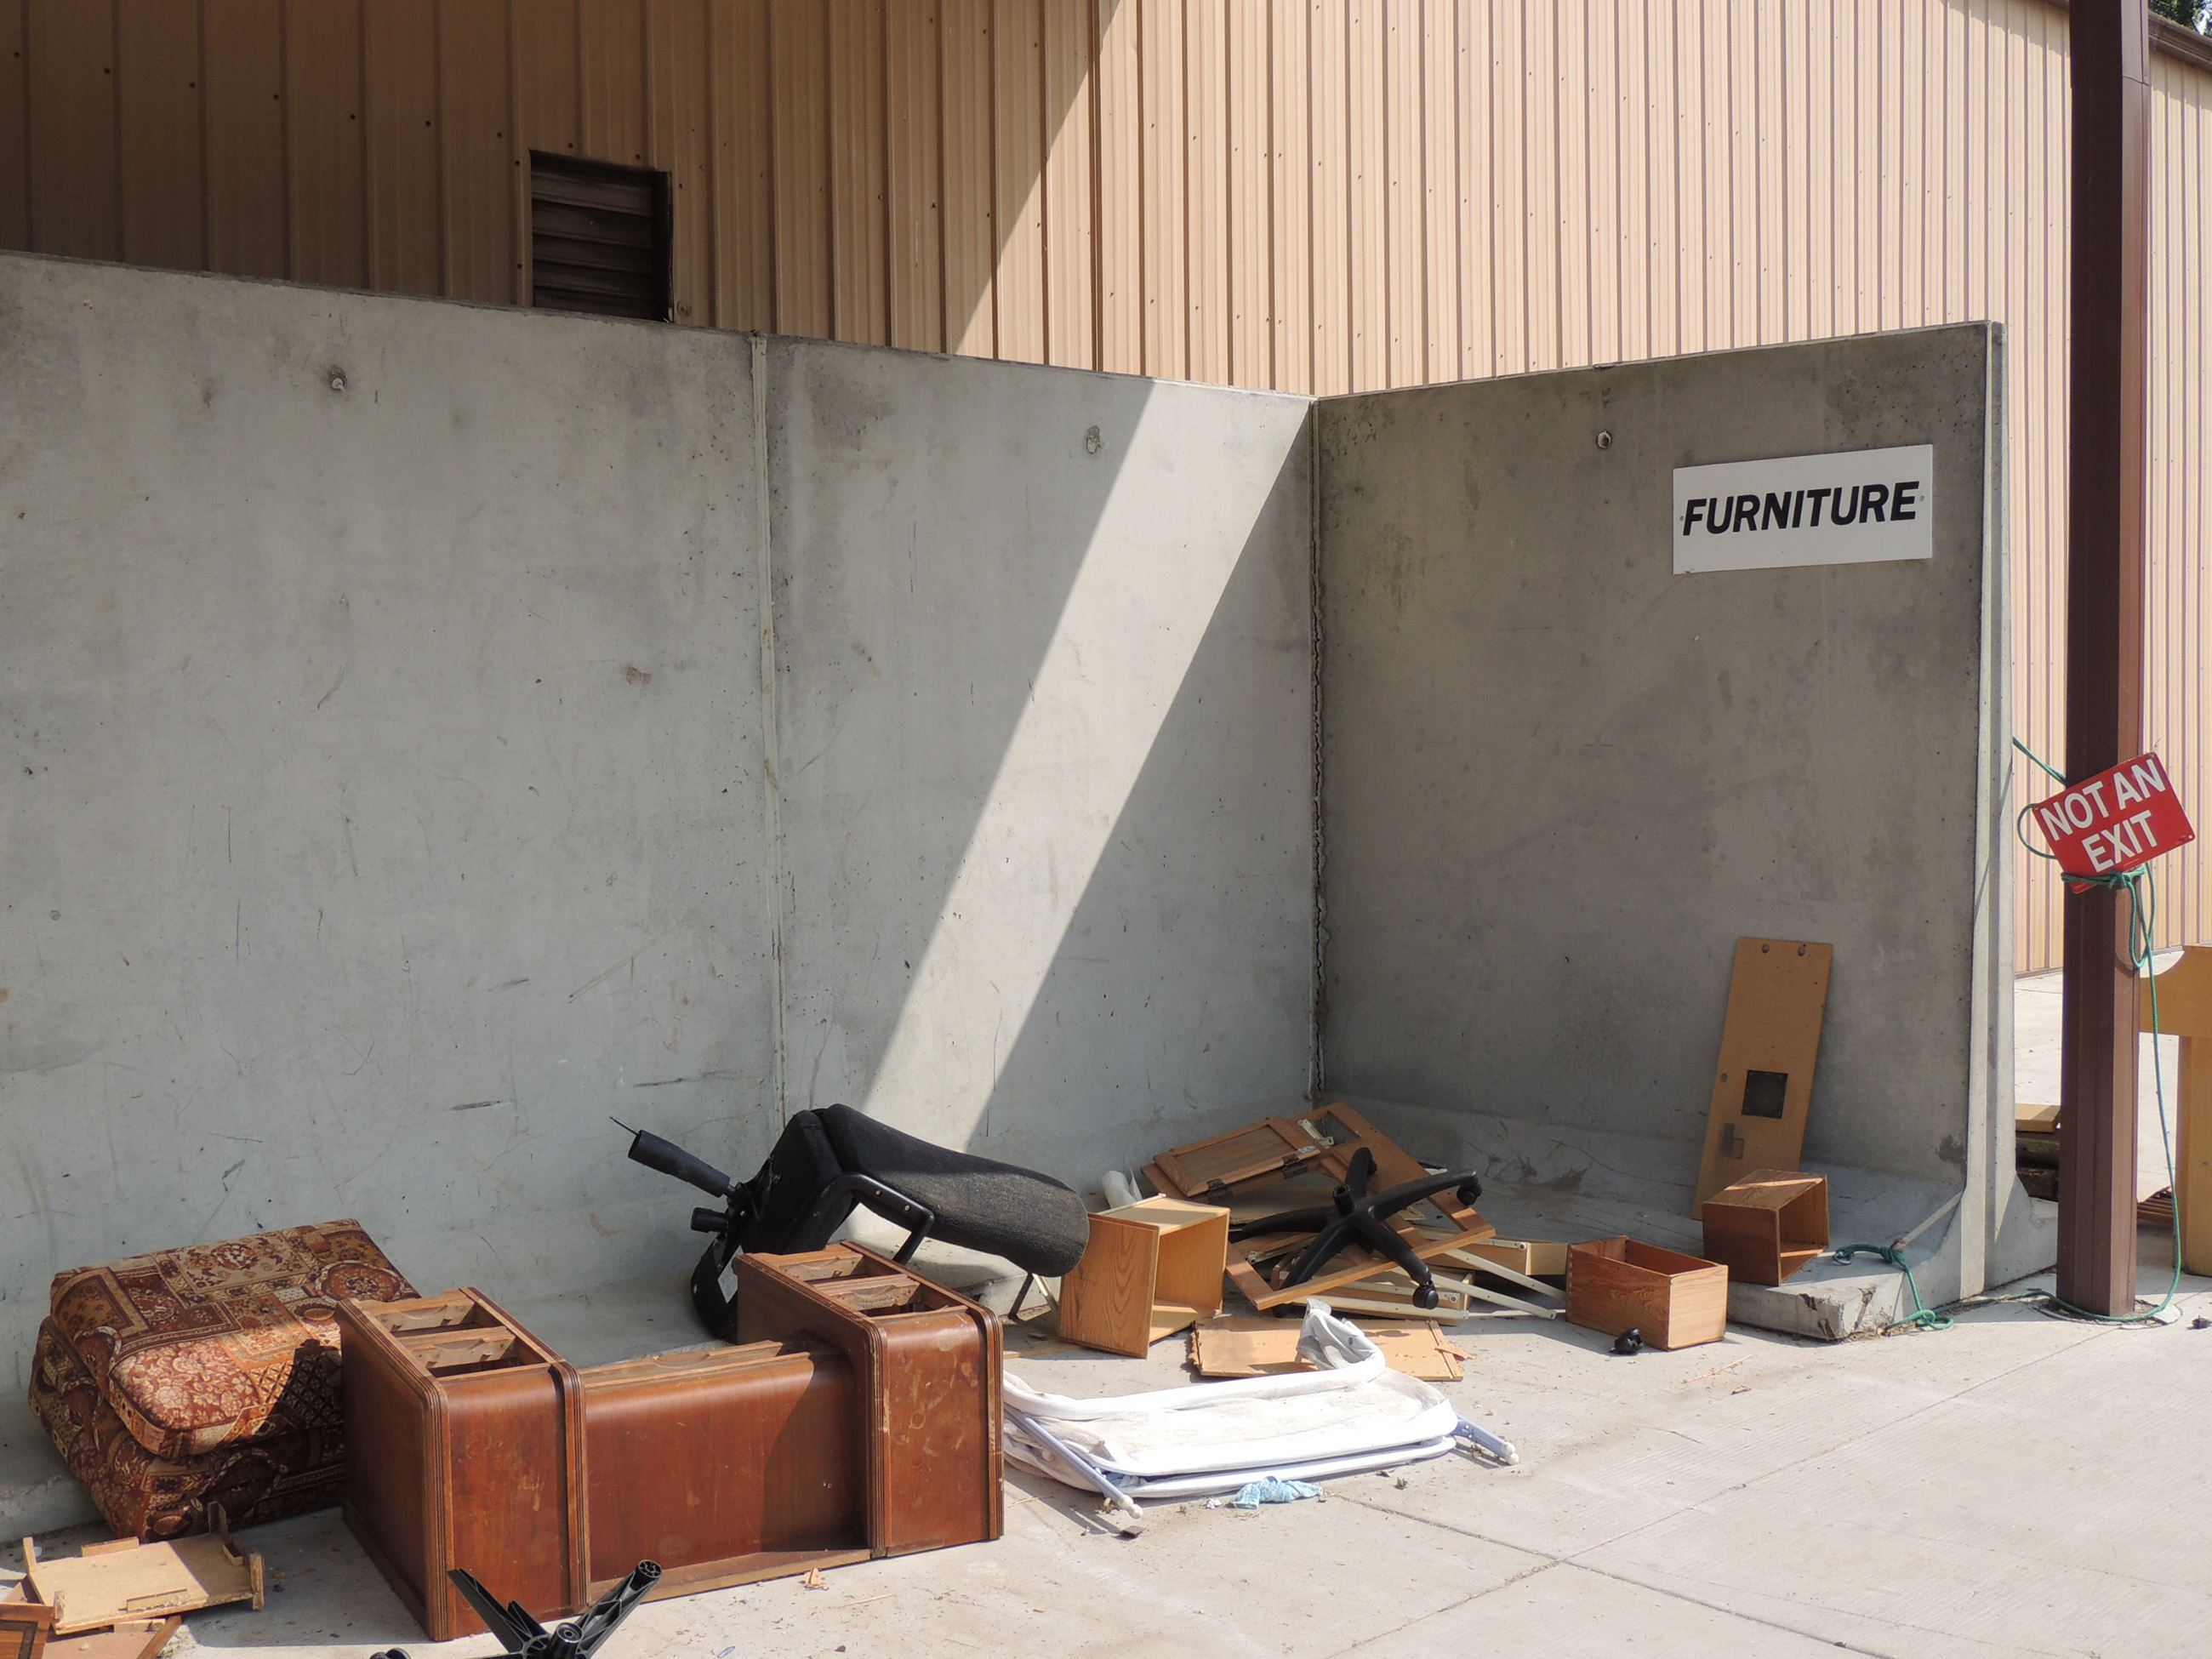 Furniture Drop-Off Area